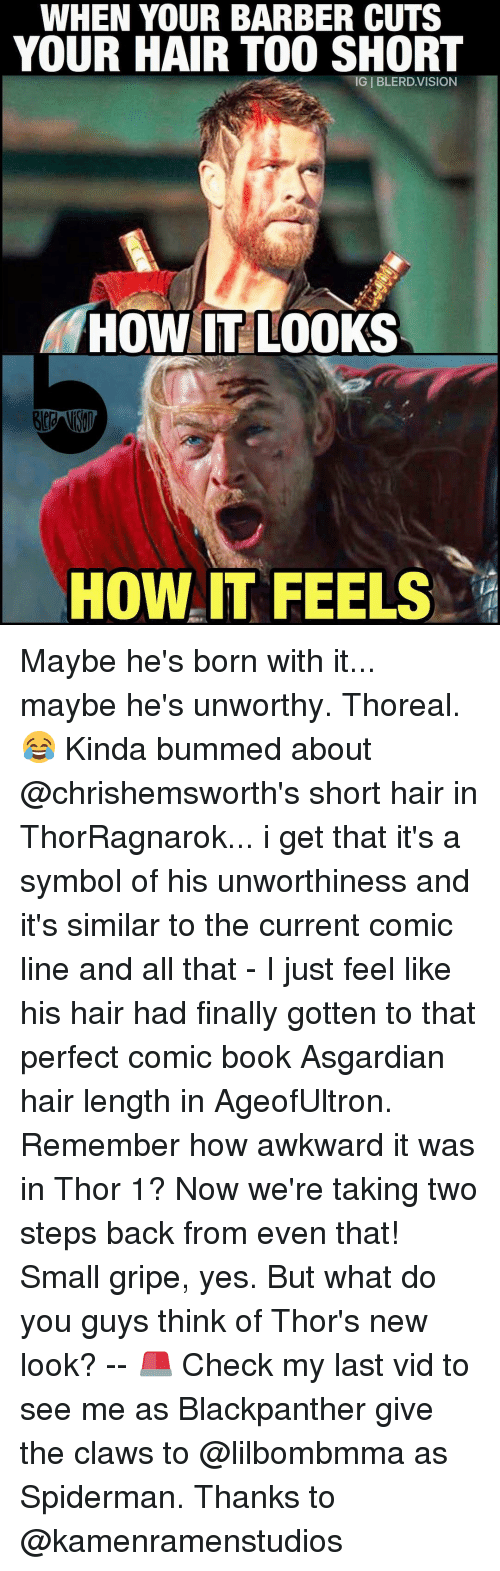 Asgardian: WHEN YOUR BARBER CUTS  YOUR HAIR TOO SHORT  HOW IT LOOKS  HOW IT FEELS Maybe he's born with it... maybe he's unworthy. Thoreal. 😂 Kinda bummed about @chrishemsworth's short hair in ThorRagnarok... i get that it's a symbol of his unworthiness and it's similar to the current comic line and all that - I just feel like his hair had finally gotten to that perfect comic book Asgardian hair length in AgeofUltron. Remember how awkward it was in Thor 1? Now we're taking two steps back from even that! Small gripe, yes. But what do you guys think of Thor's new look? -- 🚨 Check my last vid to see me as Blackpanther give the claws to @lilbombmma as Spiderman. Thanks to @kamenramenstudios